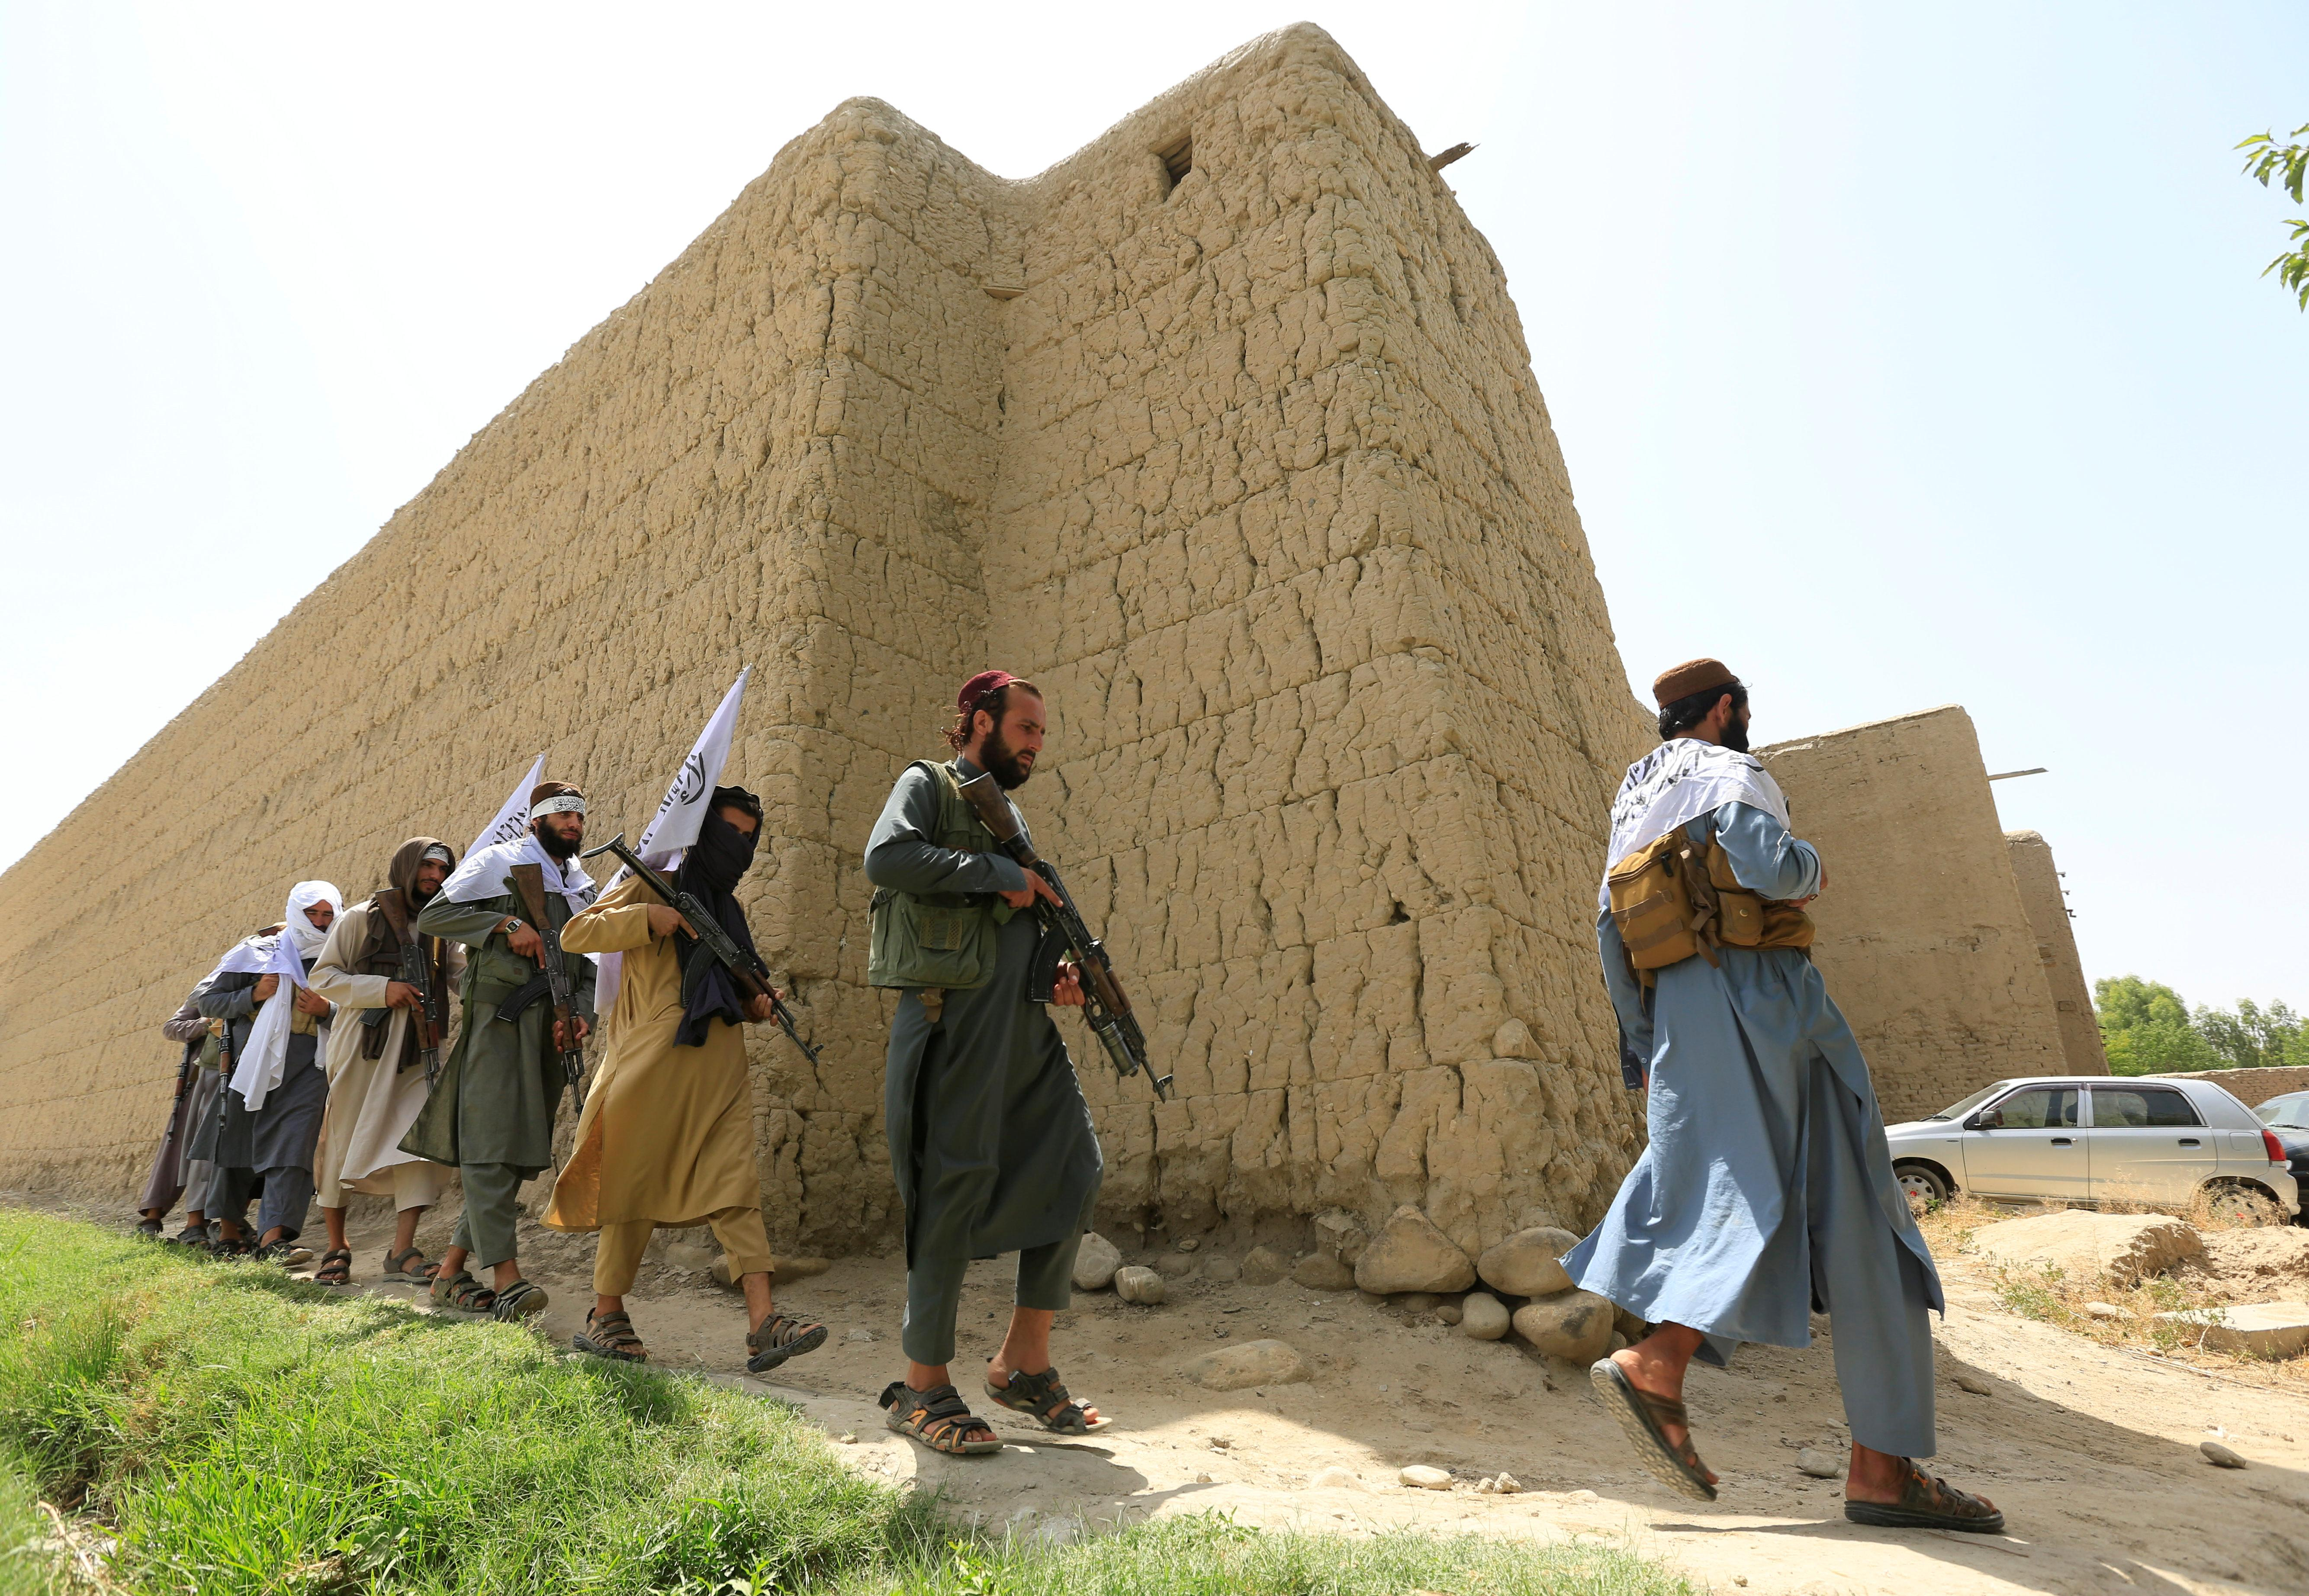 Taliban, U.S. pact in Afghanistan could boost Islamic State